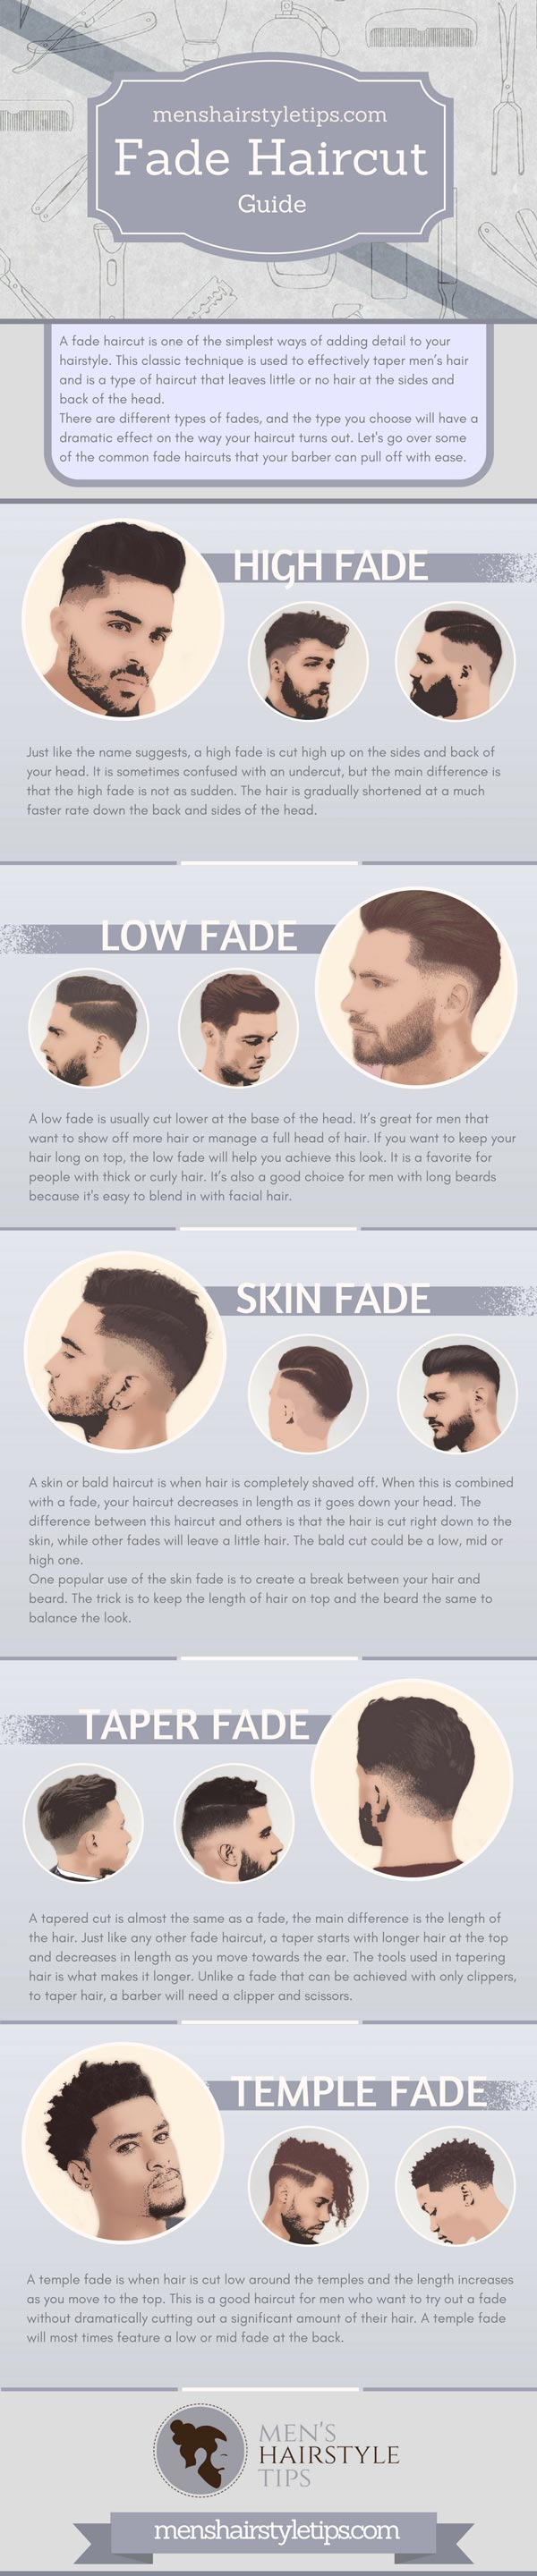 Barber Hairstyle Guide Hairstyles